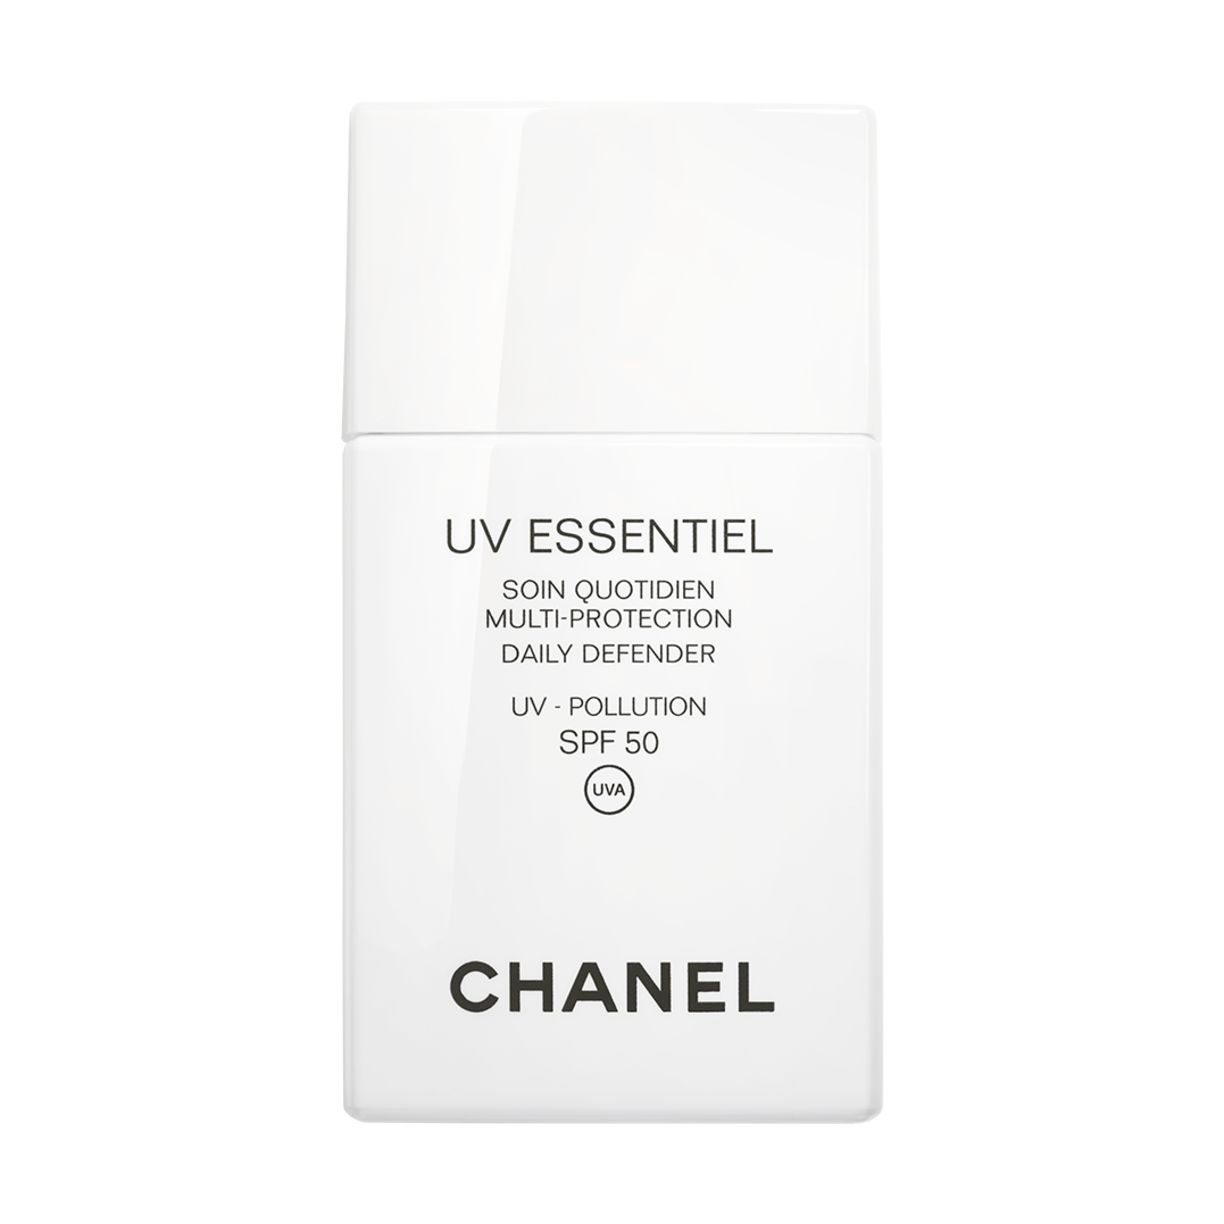 UV ESSENTIAL يو في إيسانشل